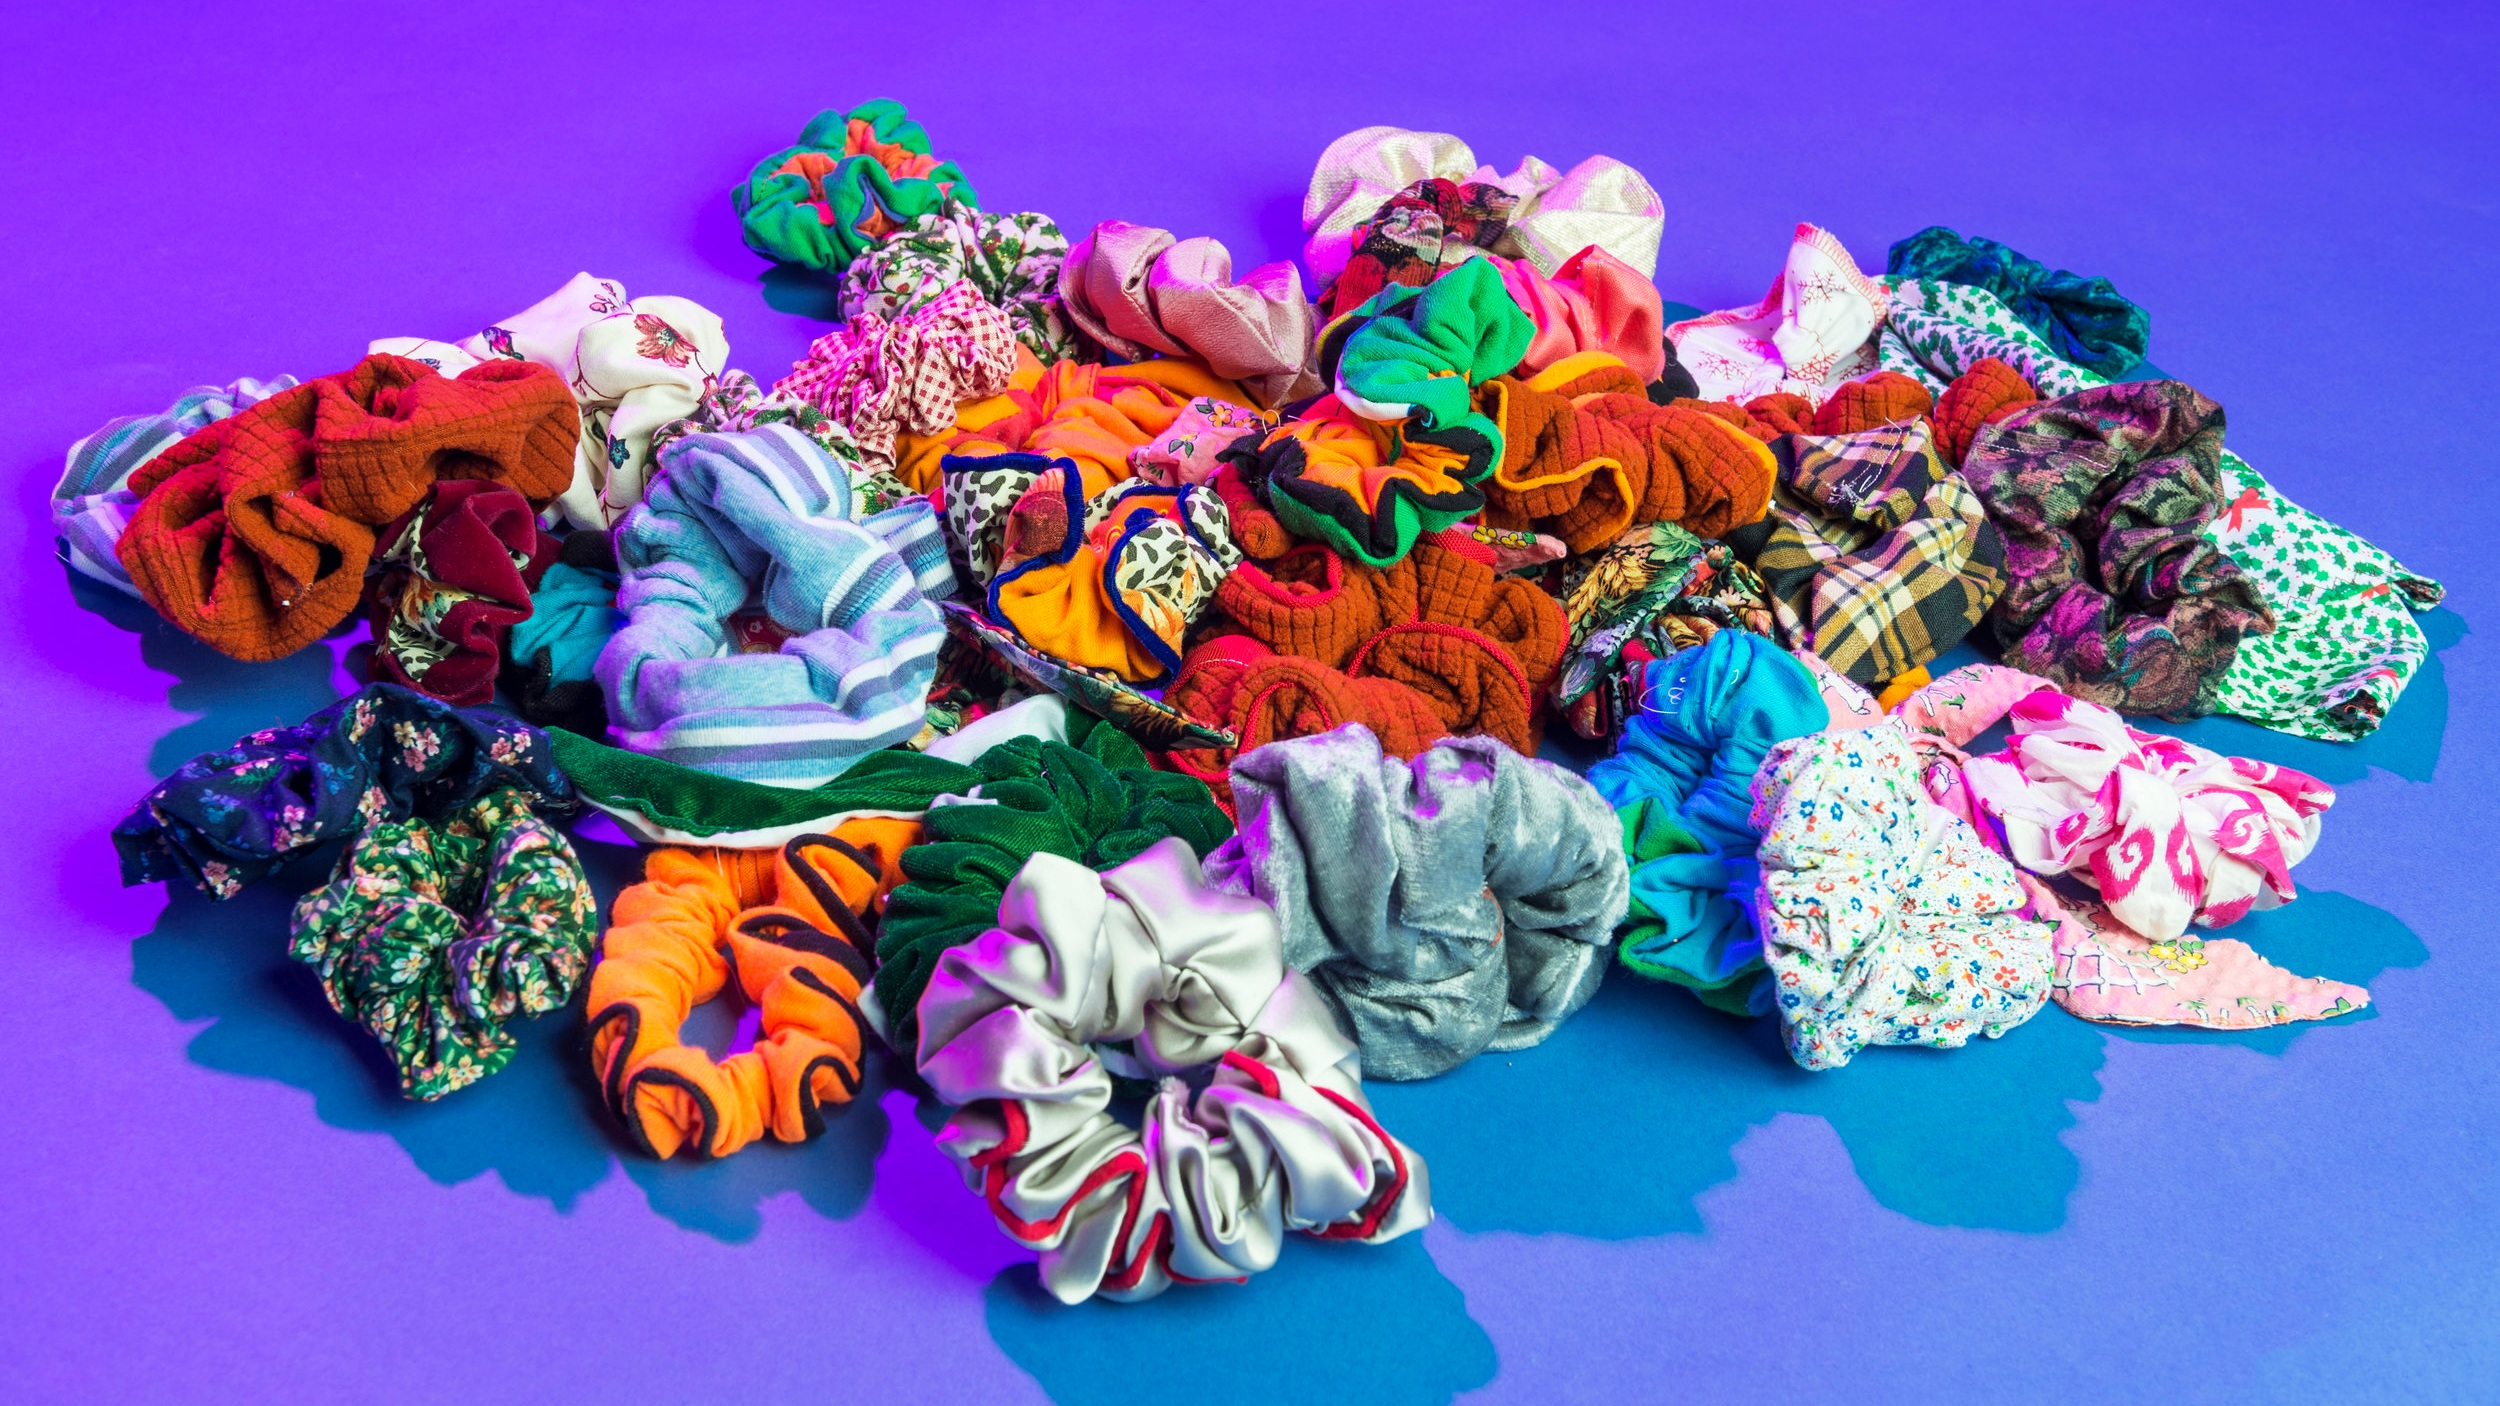 All our fabric is upcycled. Every piece is unique. - We designed our scrunchies to be good for your hair, your community and your environment.